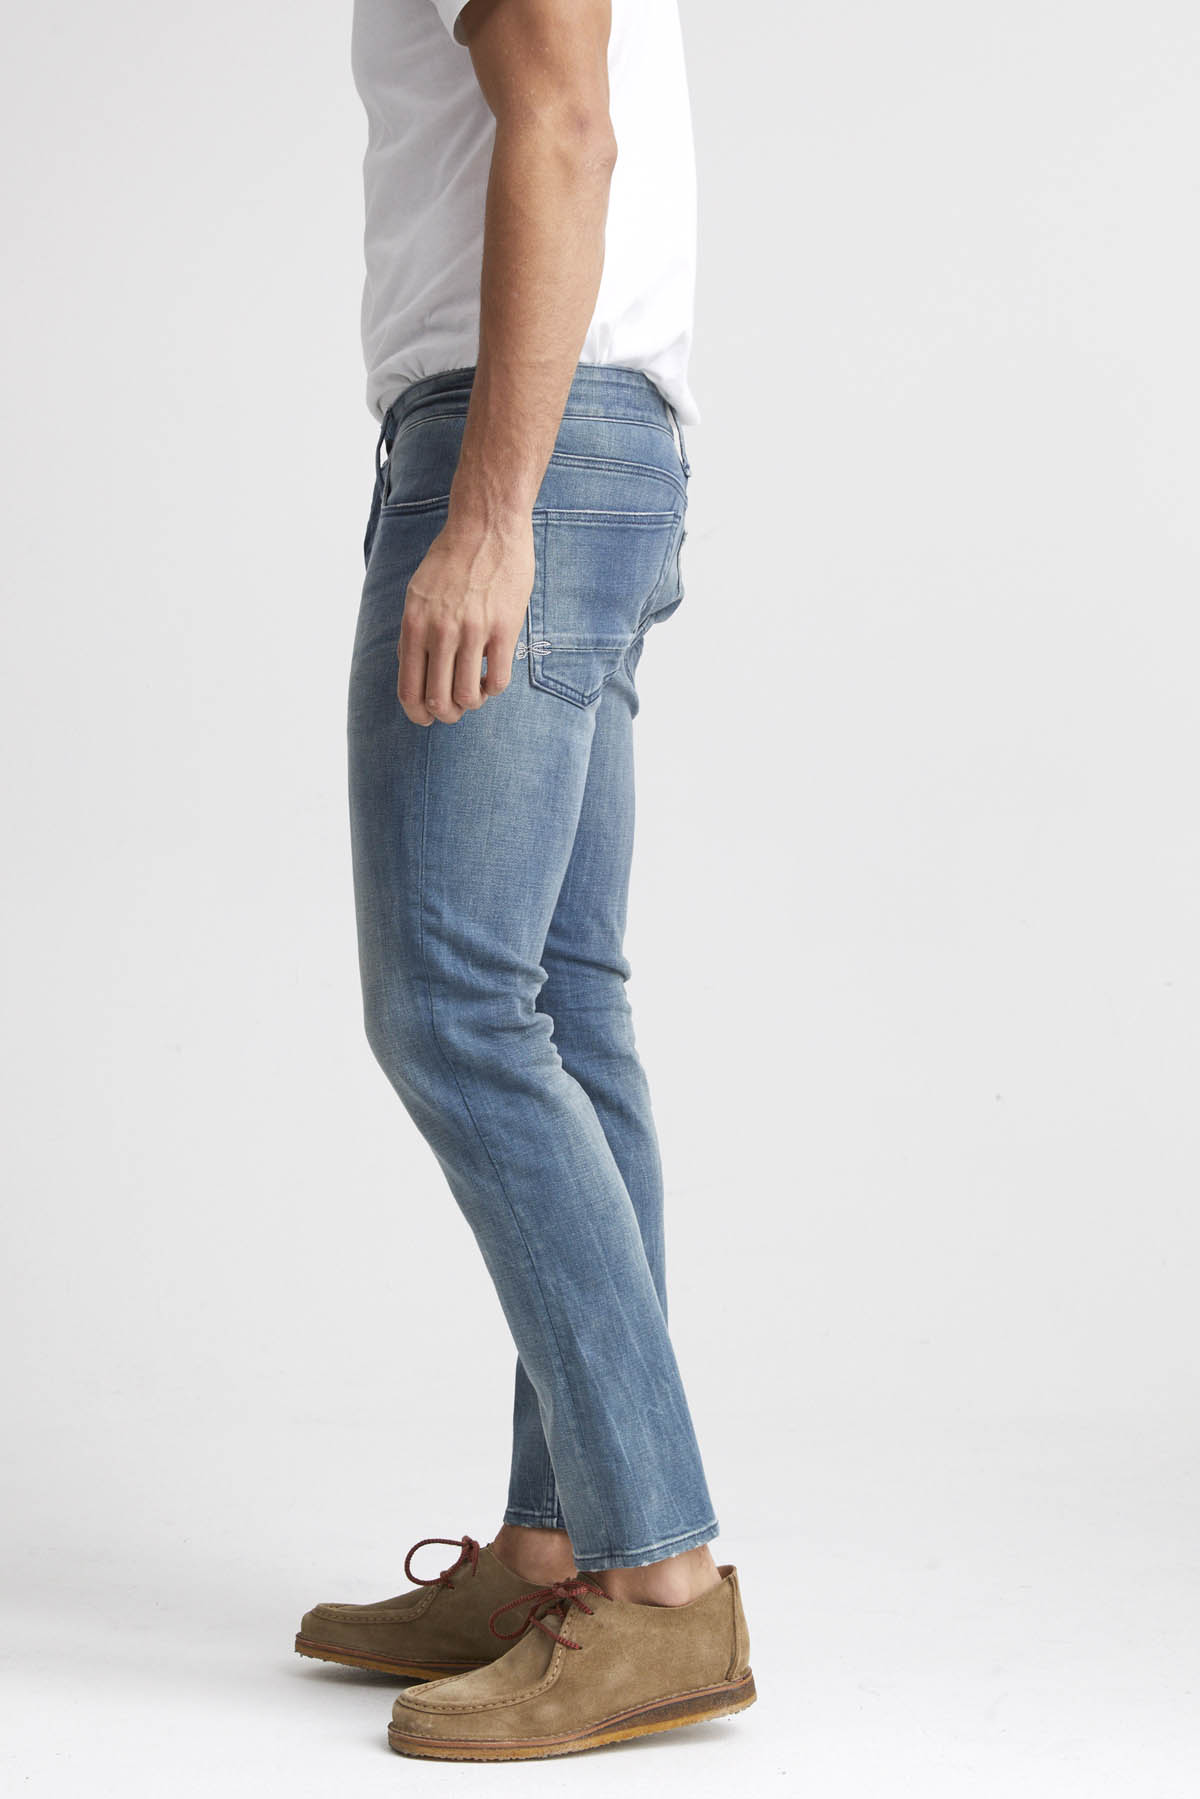 Hammer - Athletic Fit Jeans - Detail